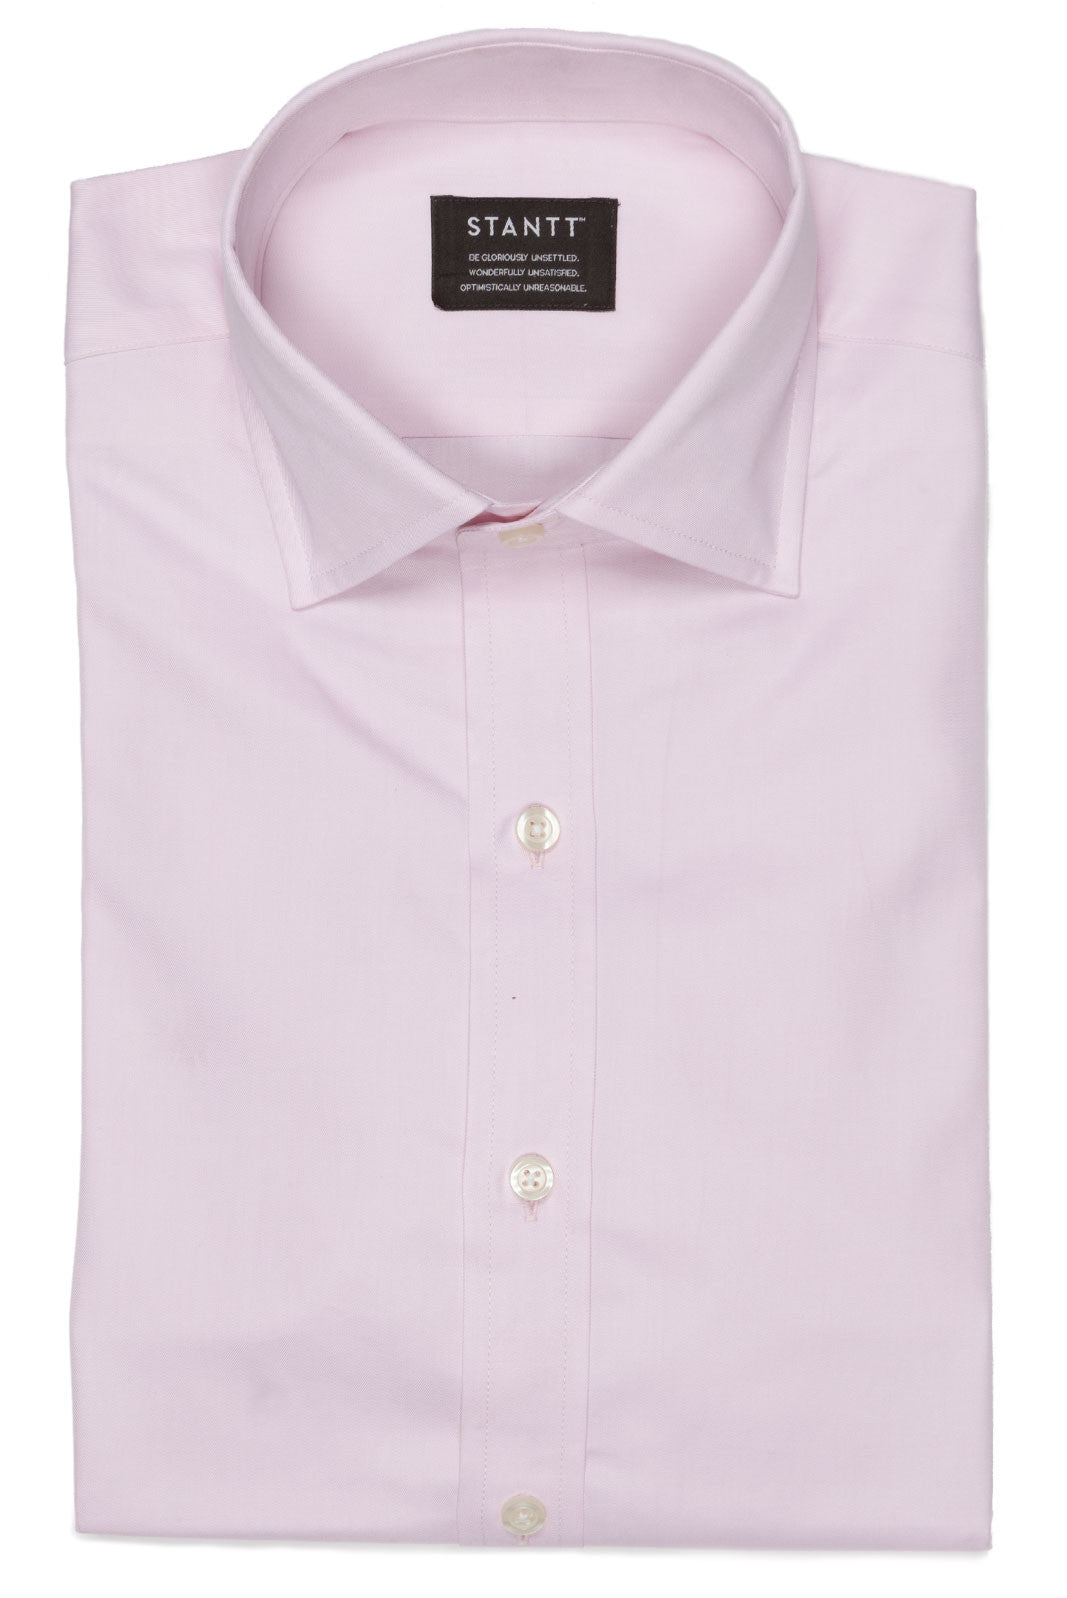 Light Pink: Modified Spread Collar, French Cuff